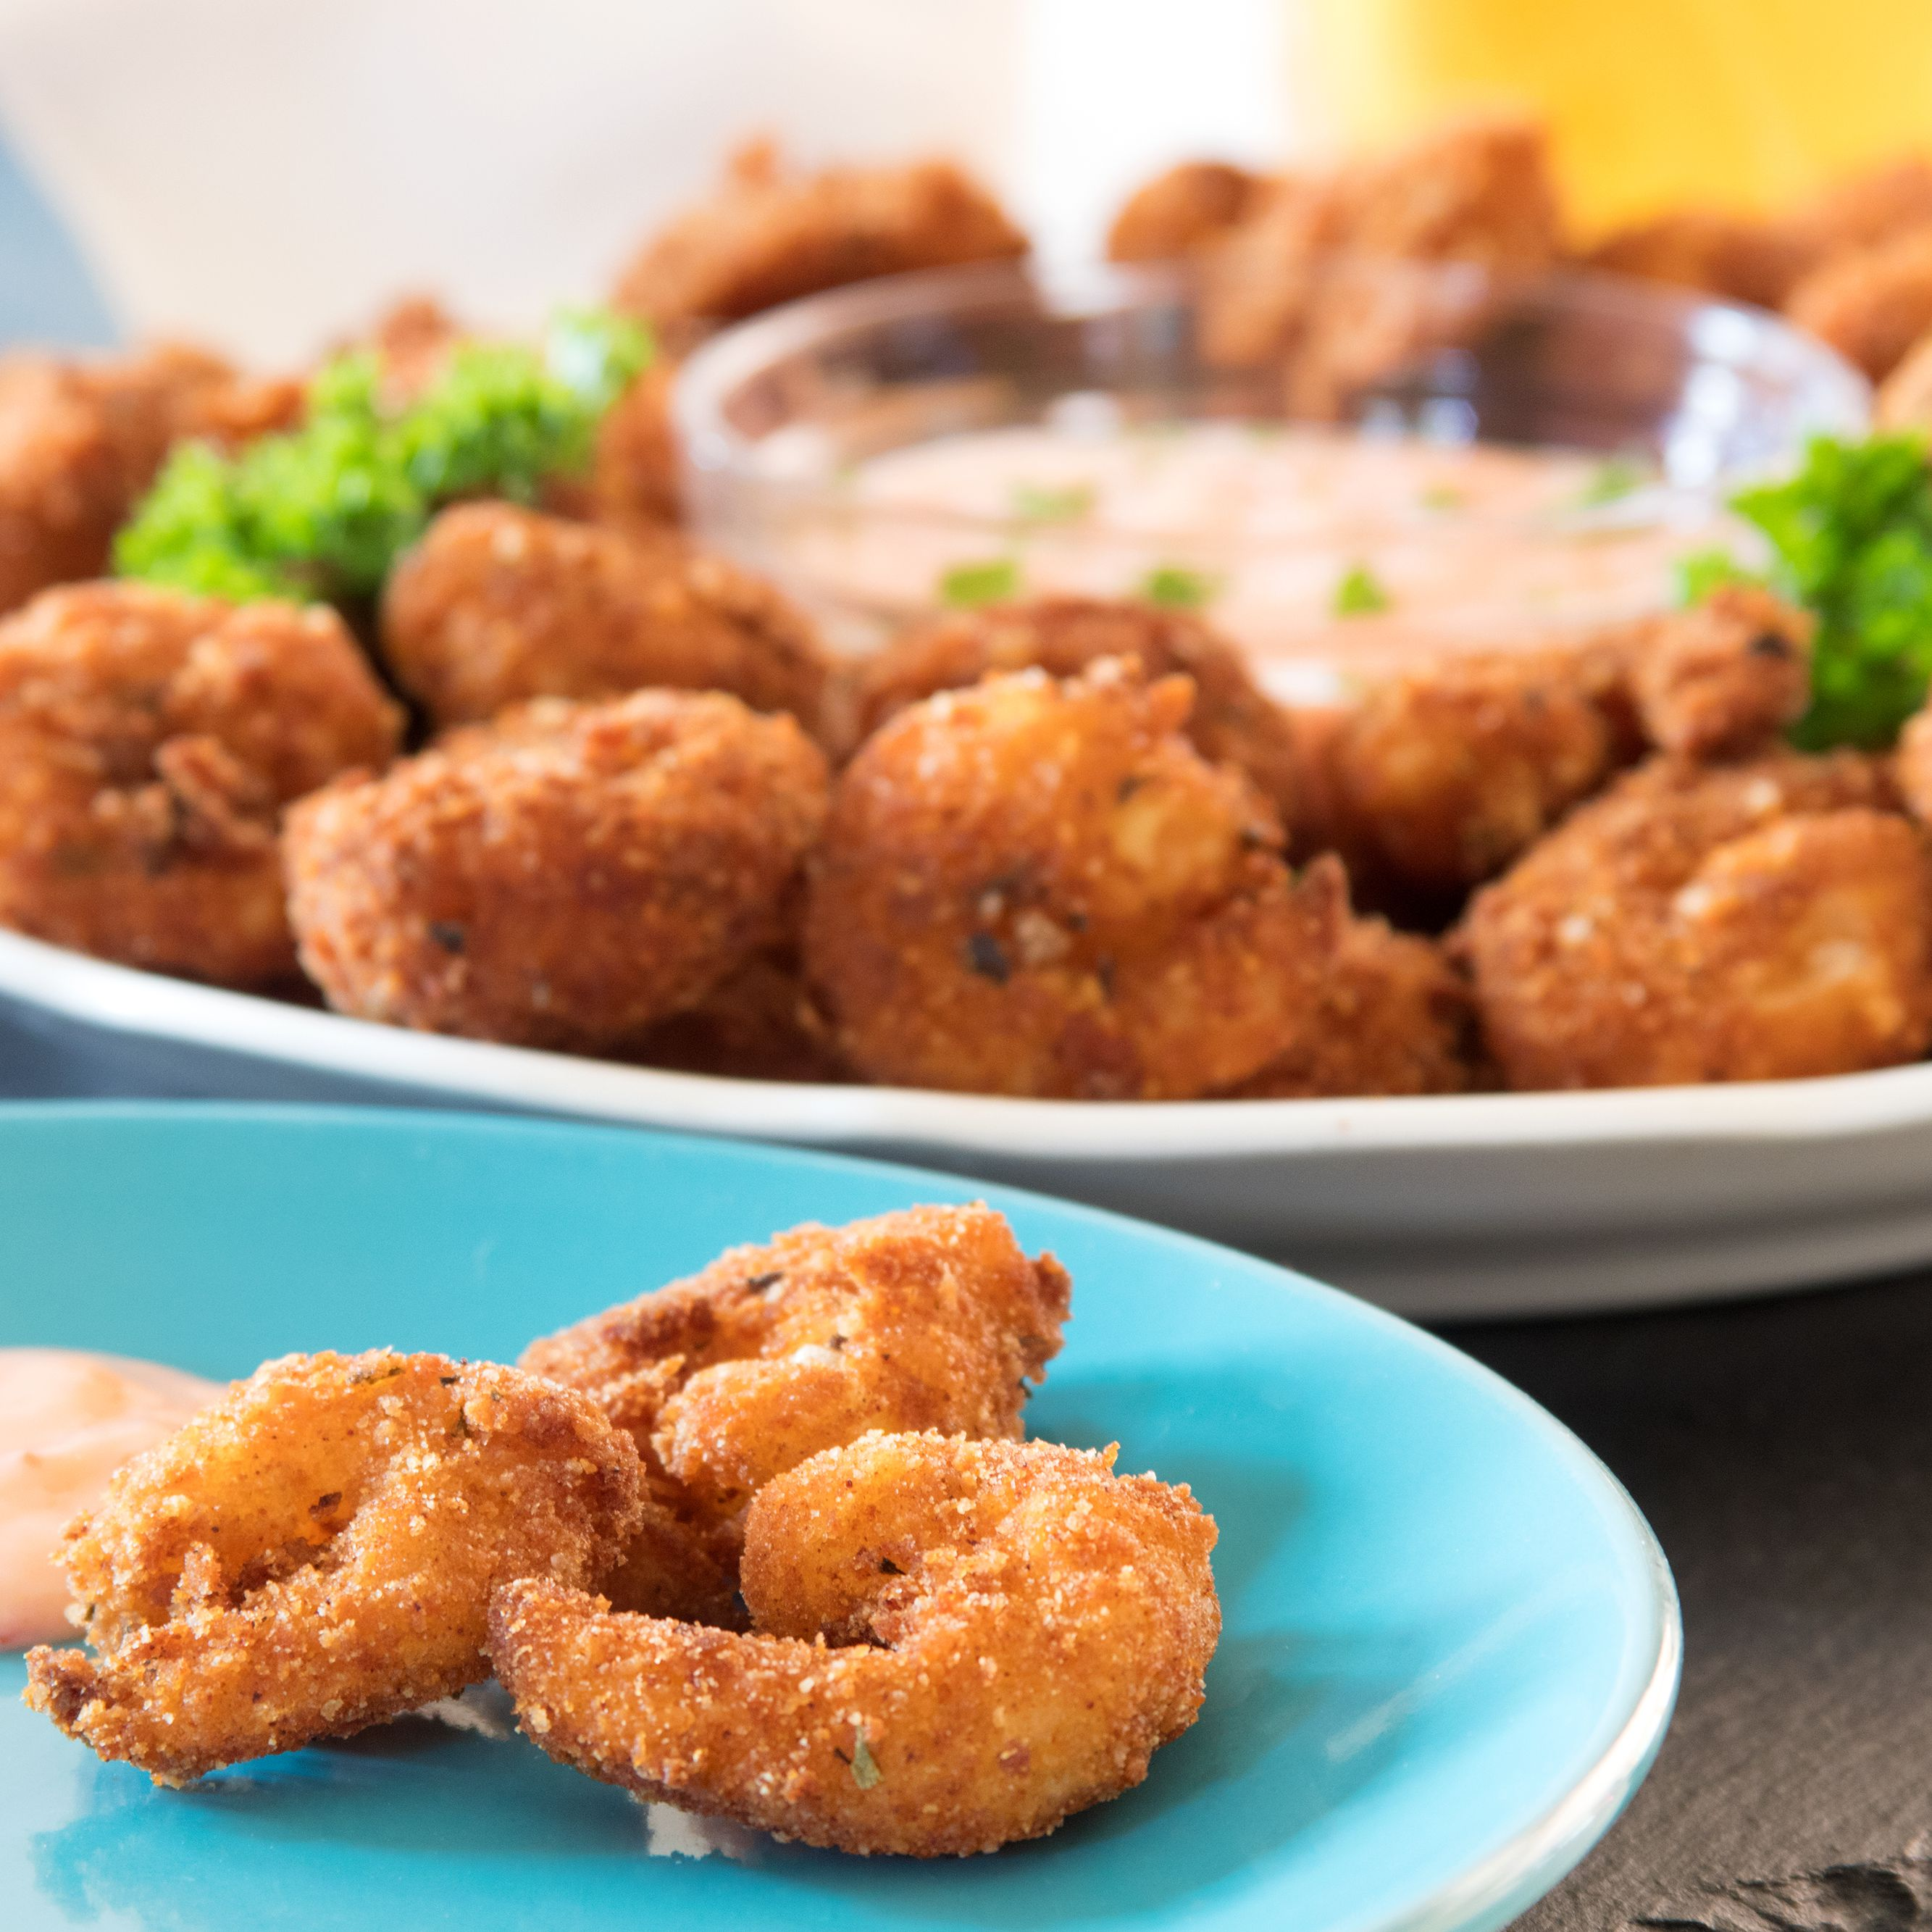 Popcorn Shrimp Recipe With Sweet Chile Dipping Sauce